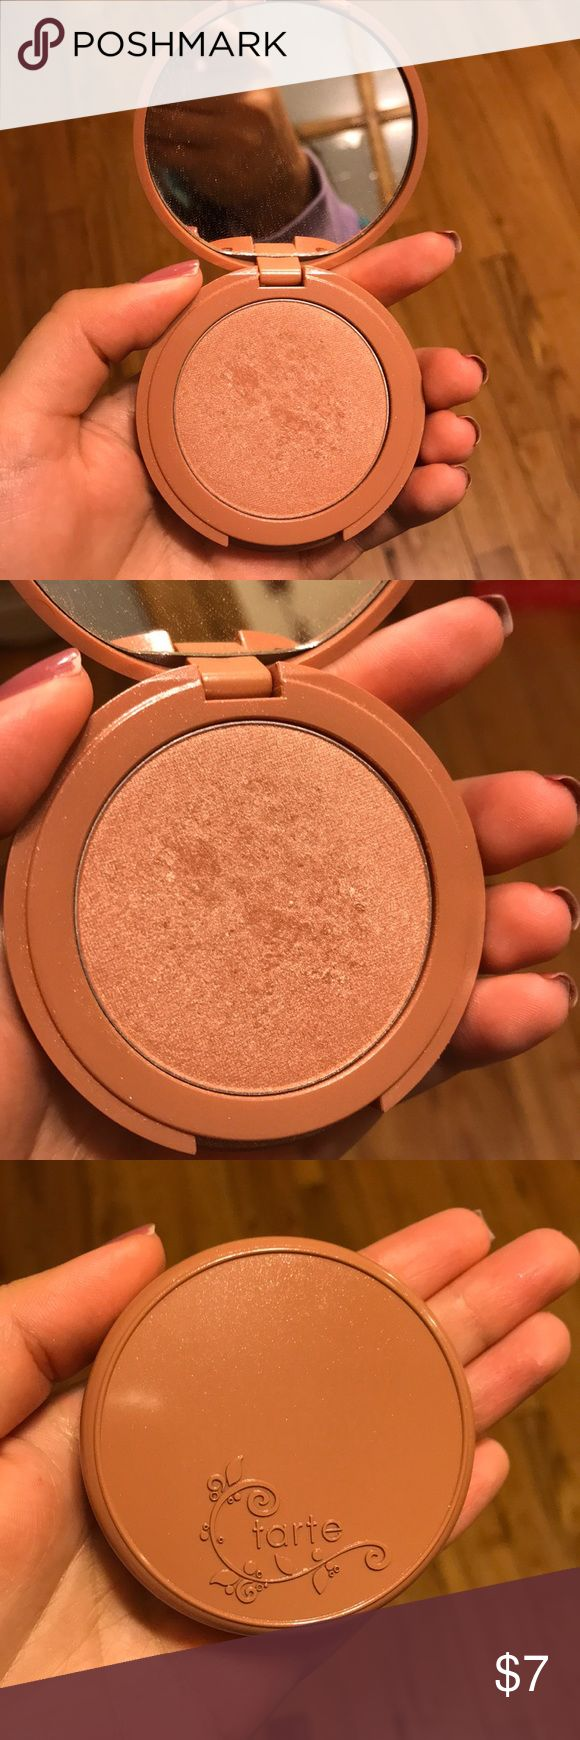 Tarte highlighter in Daygleam I️ did use this highlighter a few times not realizing it was to dark for me! Hopefully someone else can get more use out of it. I️ do not have the box sorry Tarte Makeup Luminizer